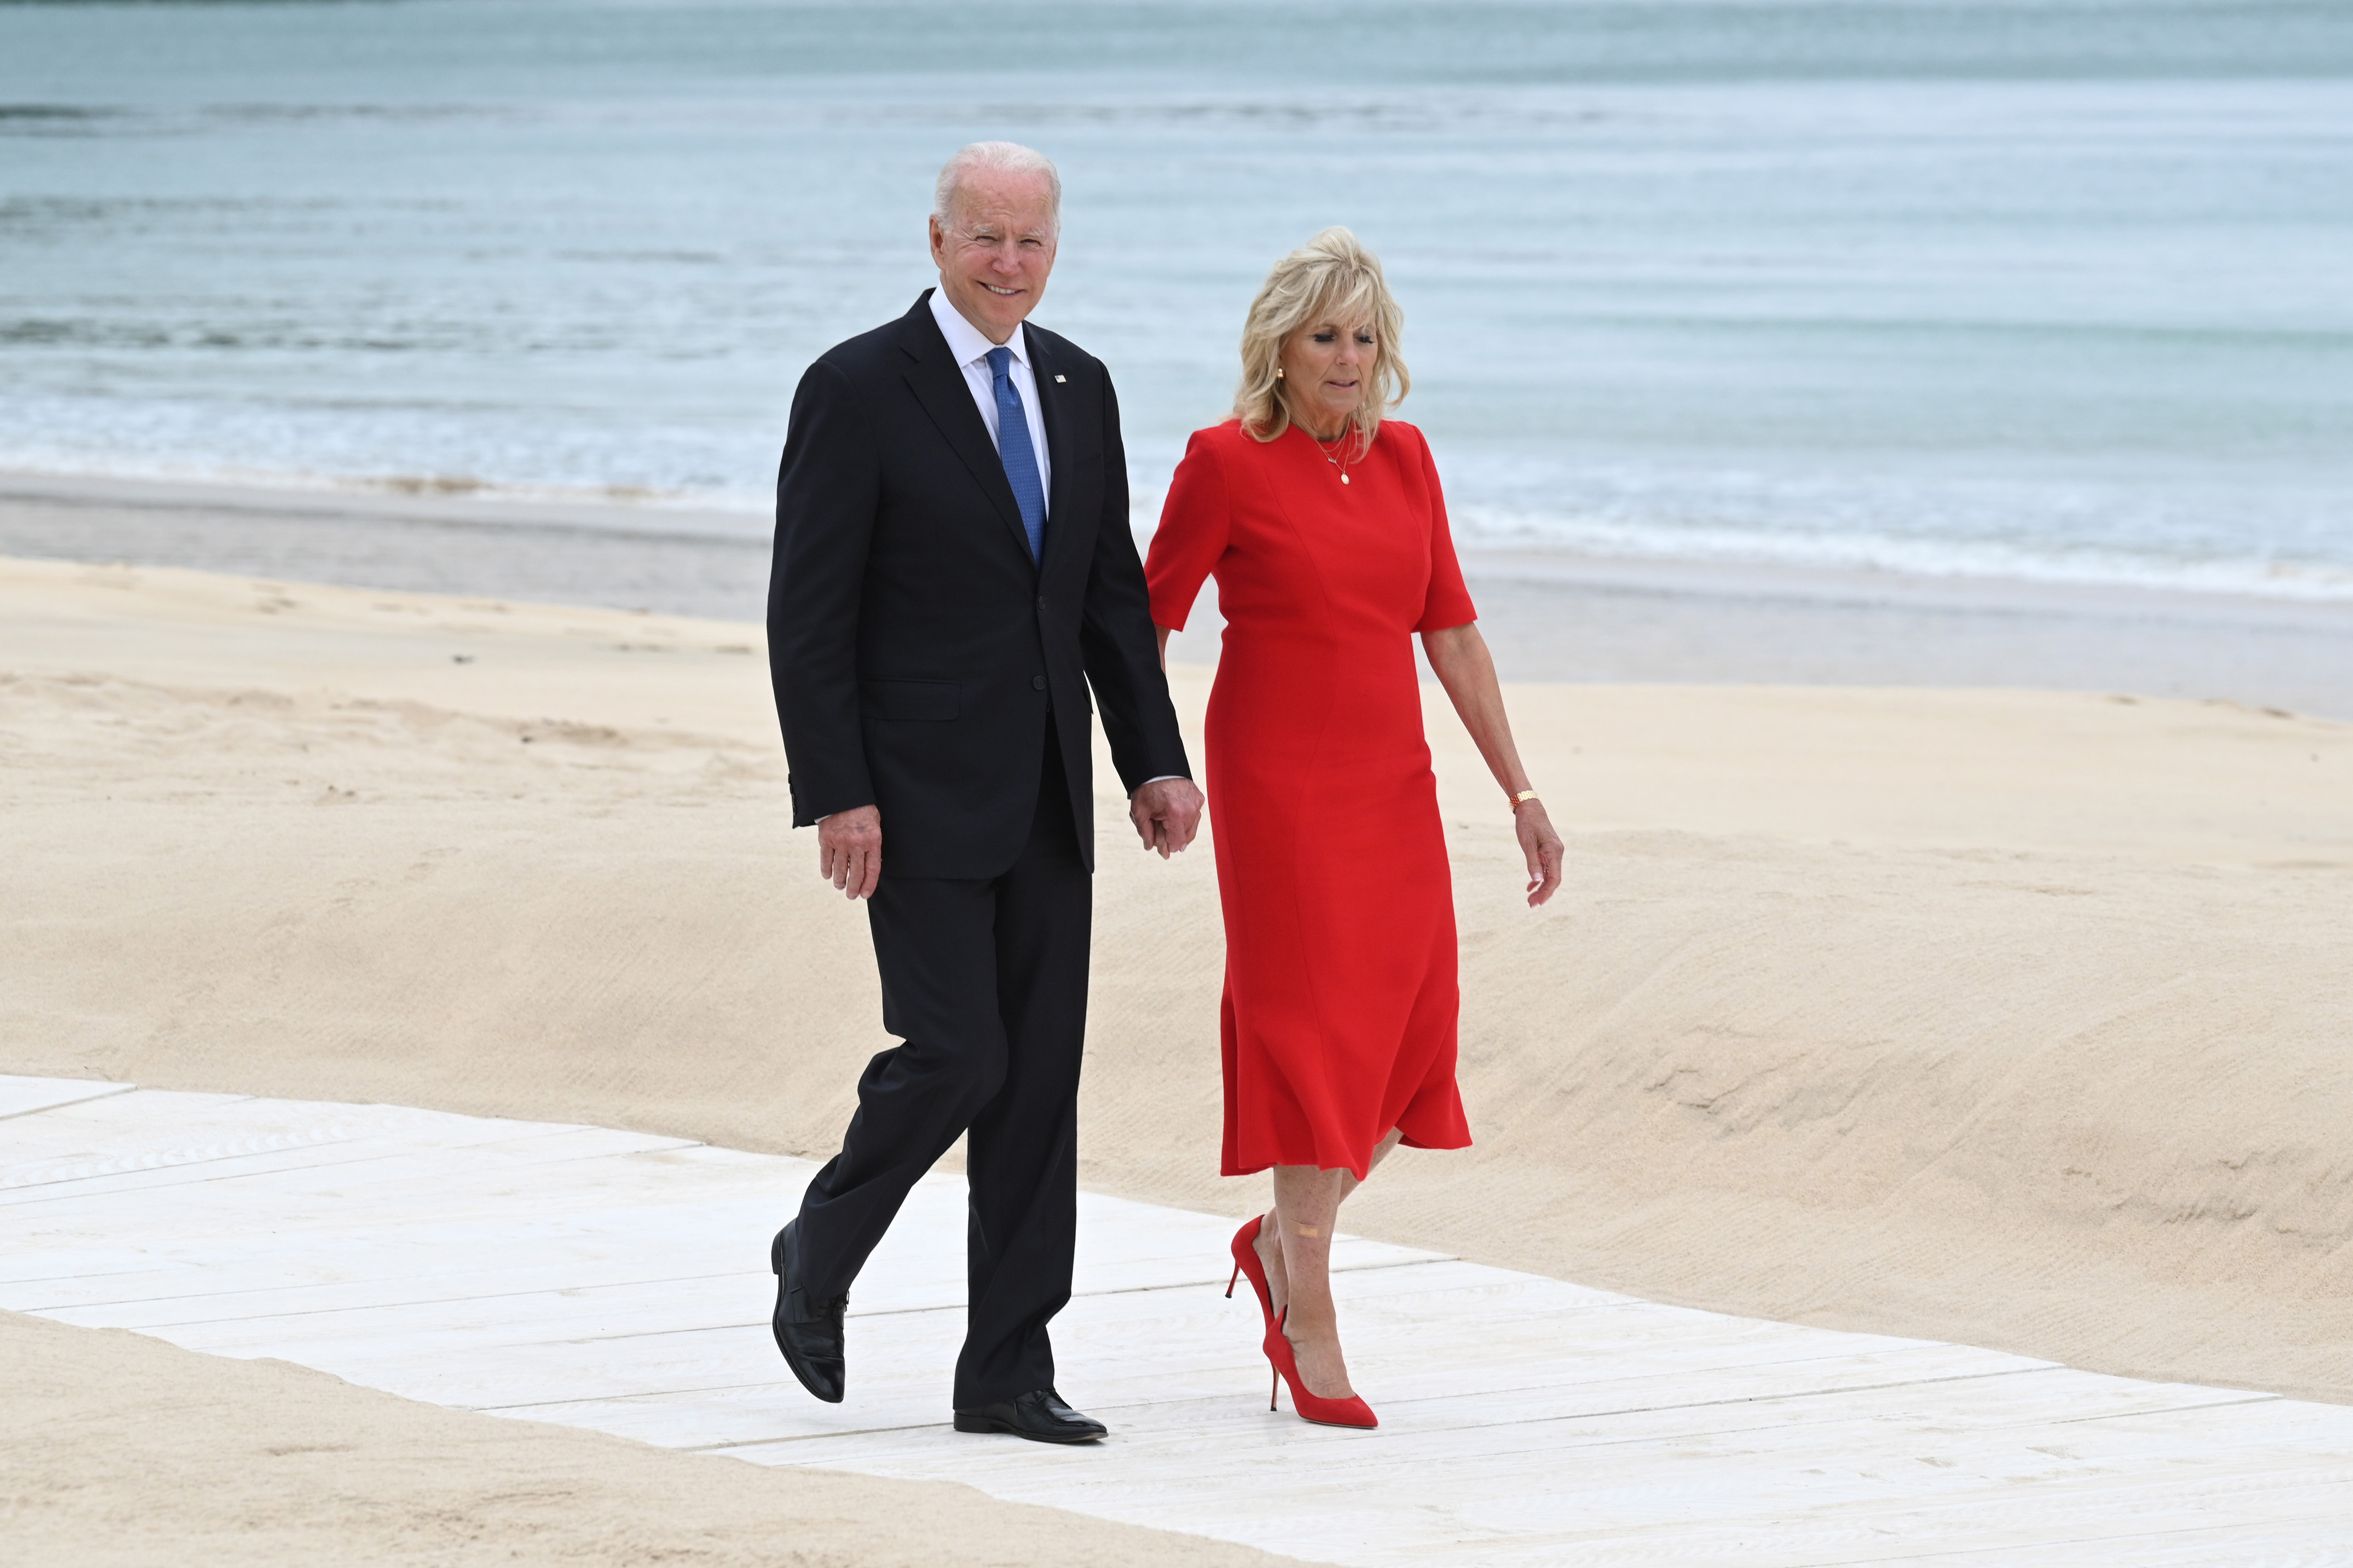 G7 Summit. US President Joe Biden and US First Lady Jill Biden, arrive for the leaders official welcome and family photo, during the G7 summit in Cornwall. Picture date: Friday June 11, 2021. See PA story POLITICS G7. Photo credit should read: Leon Neal/PA Wire URN:60304198 (Press Association via AP Images)